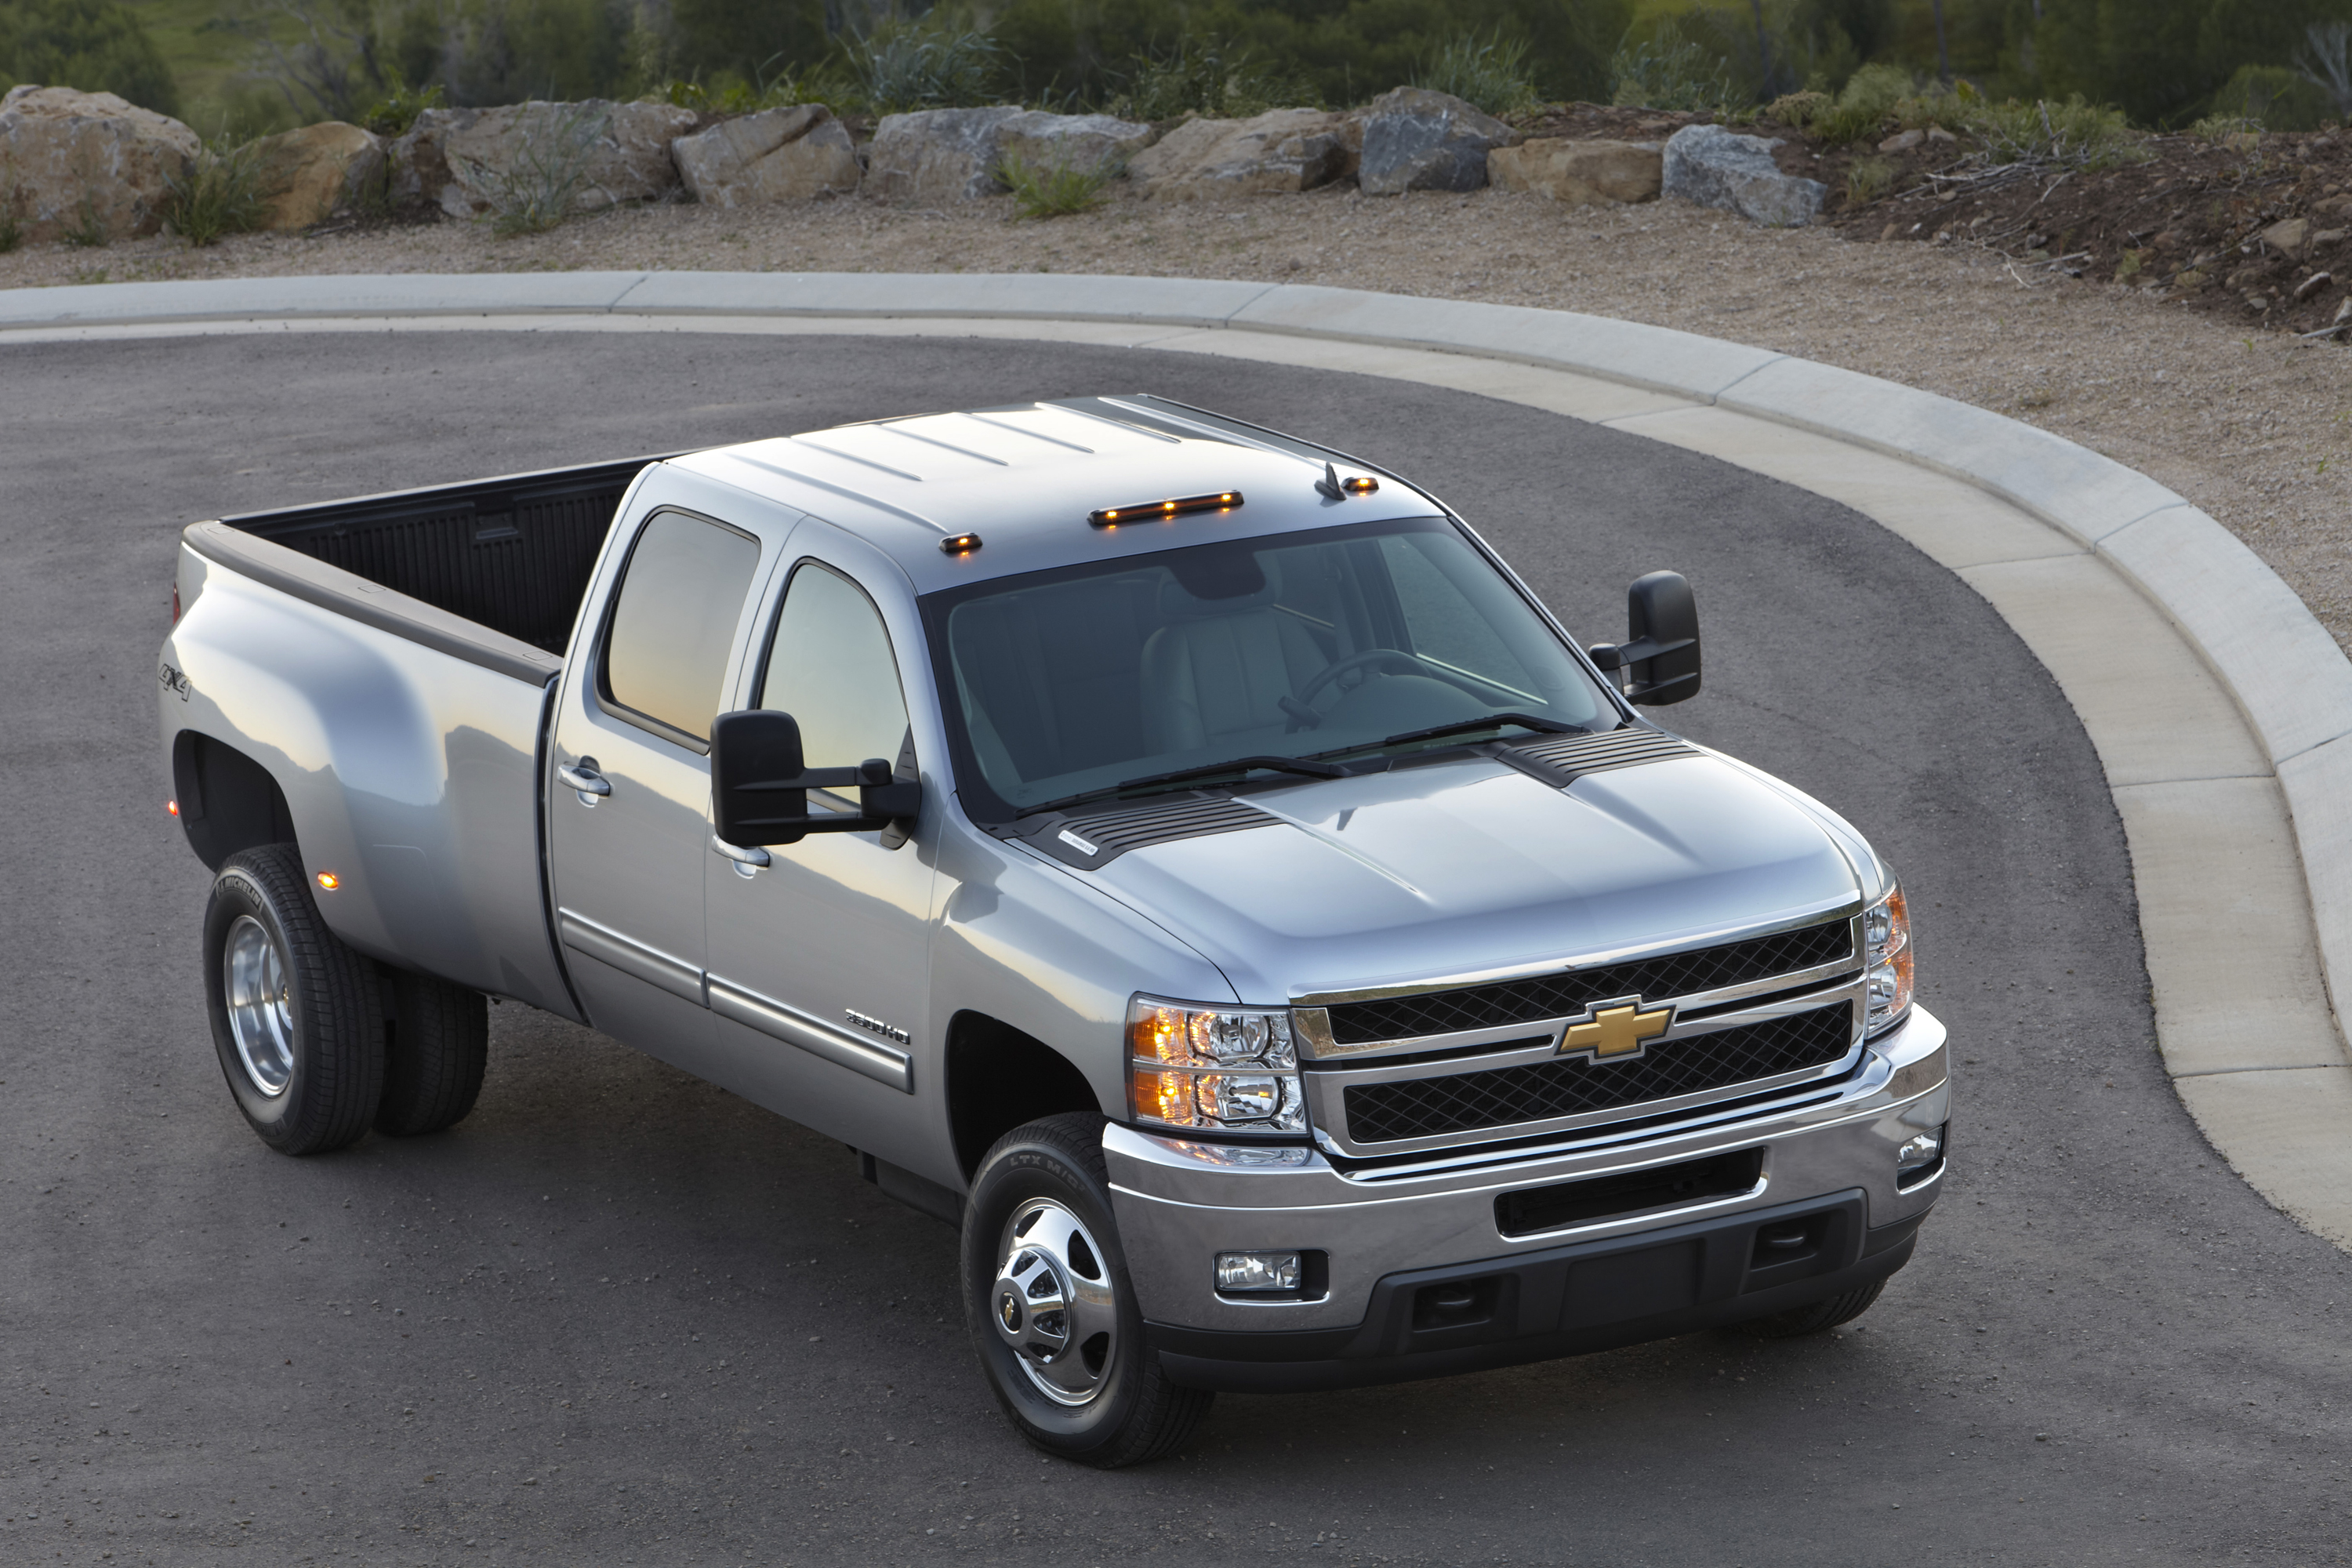 k clean lt z crew chevrolet features silverado cab overview miles inventory low